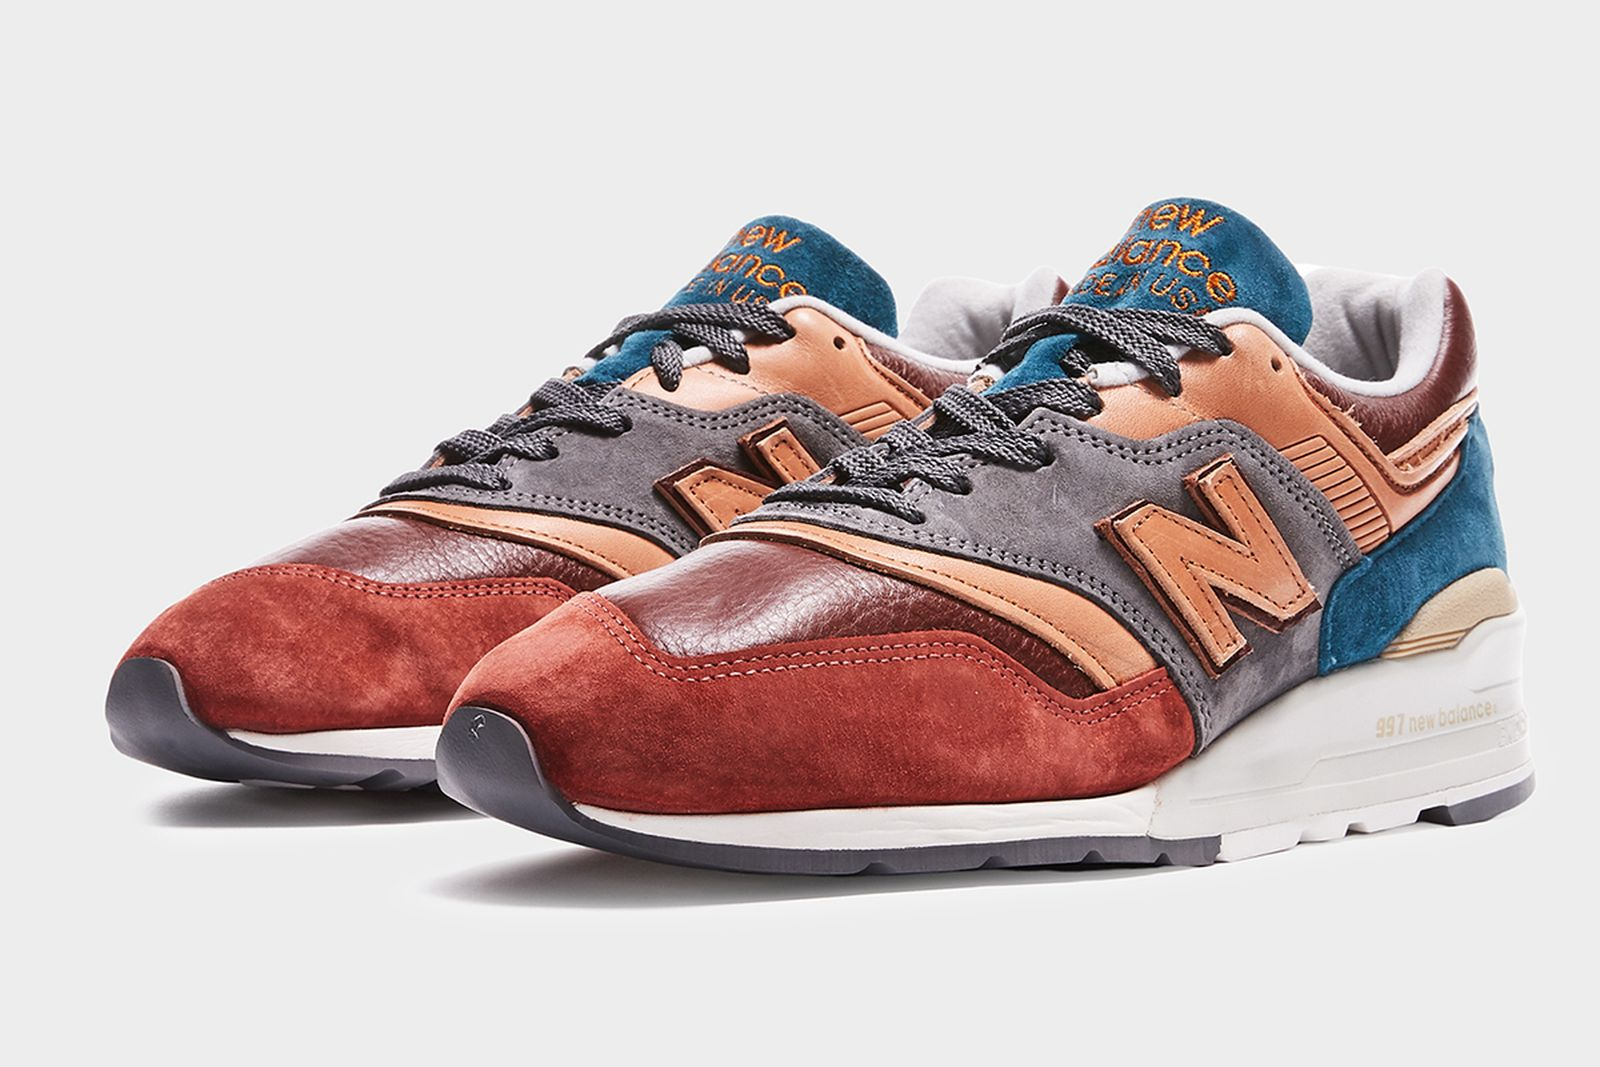 todd-snyder-new-balance-997-hudson-ny-release-date-price-04